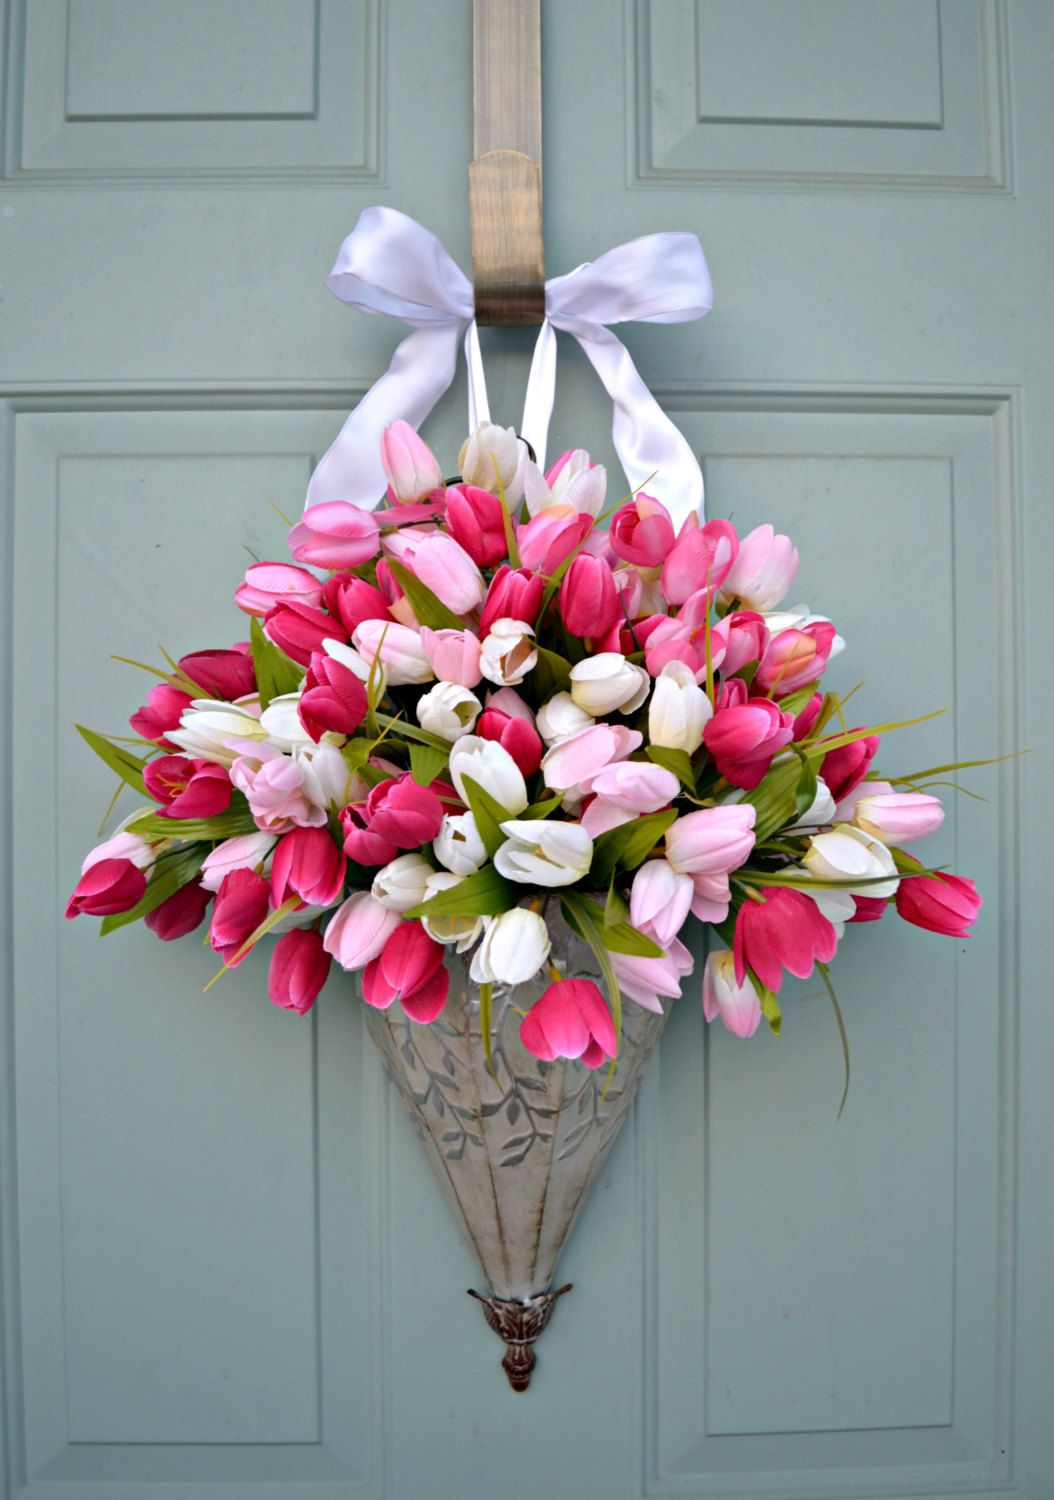 Design Spring Decorations front door decorations for spring tulips wreath decor container